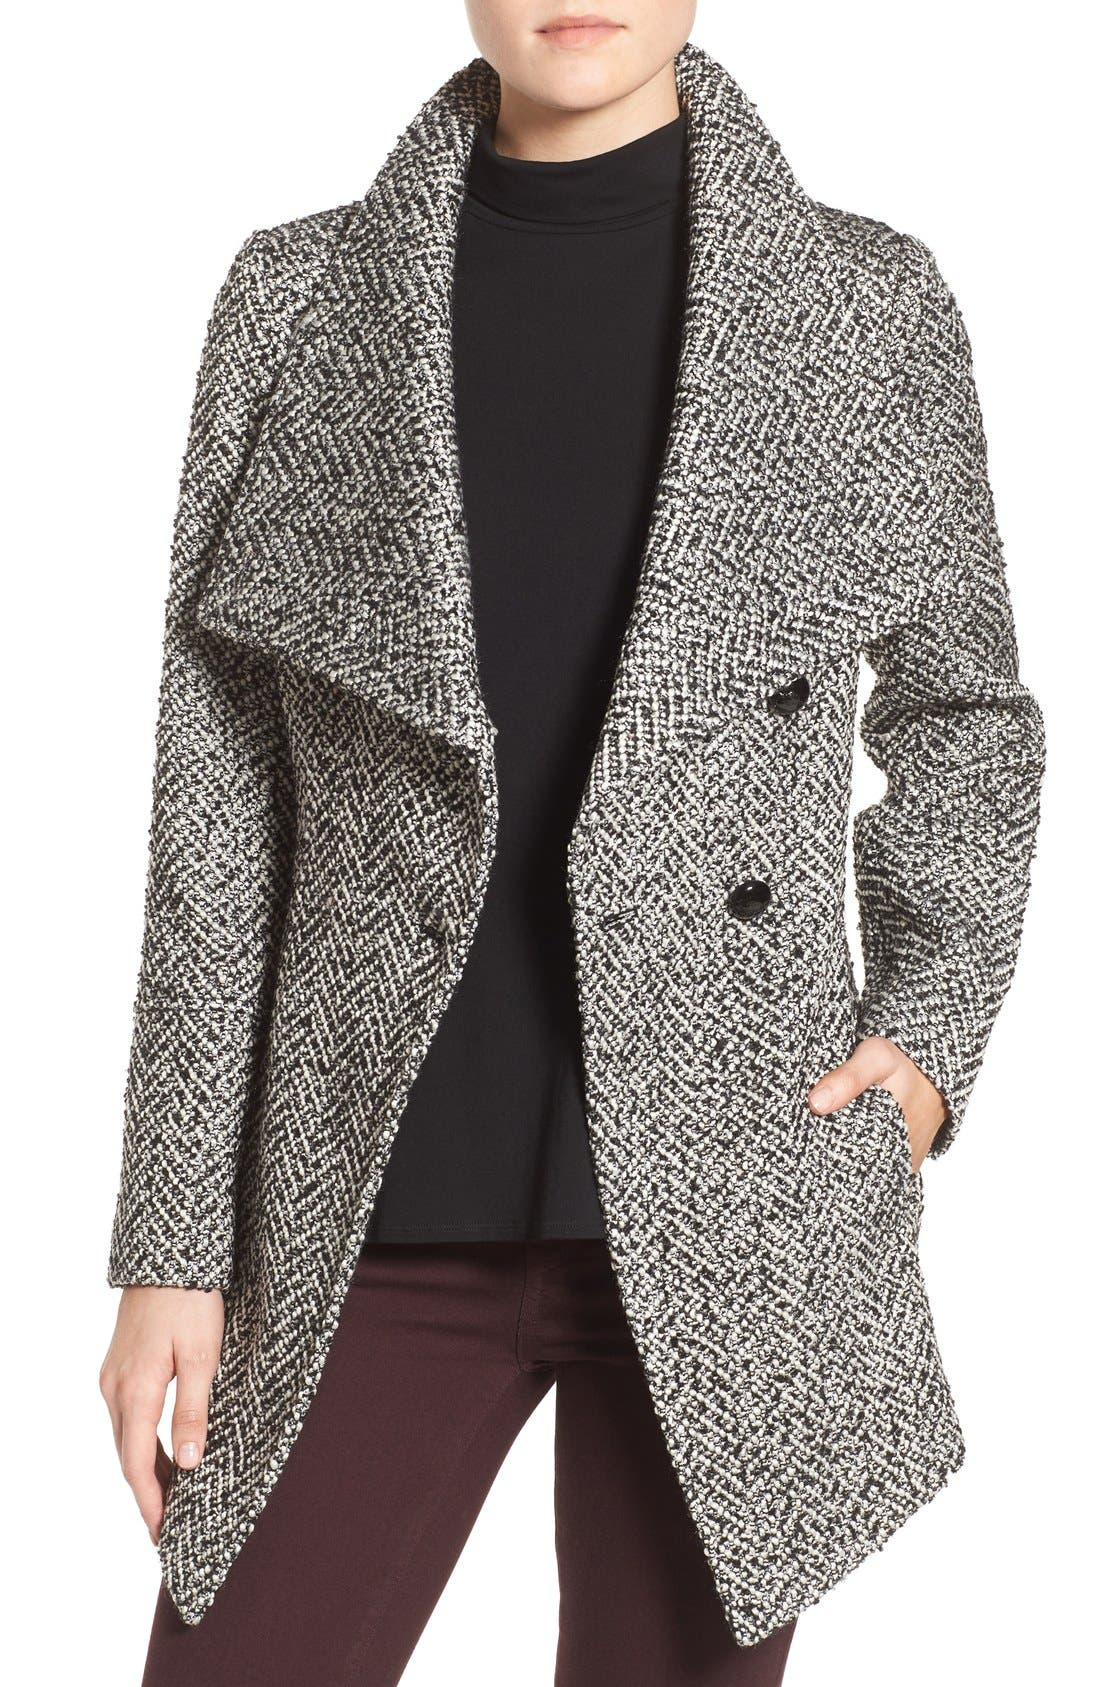 JESSICA SIMPSON,                             Belted Tweed Coat,                             Alternate thumbnail 4, color,                             003